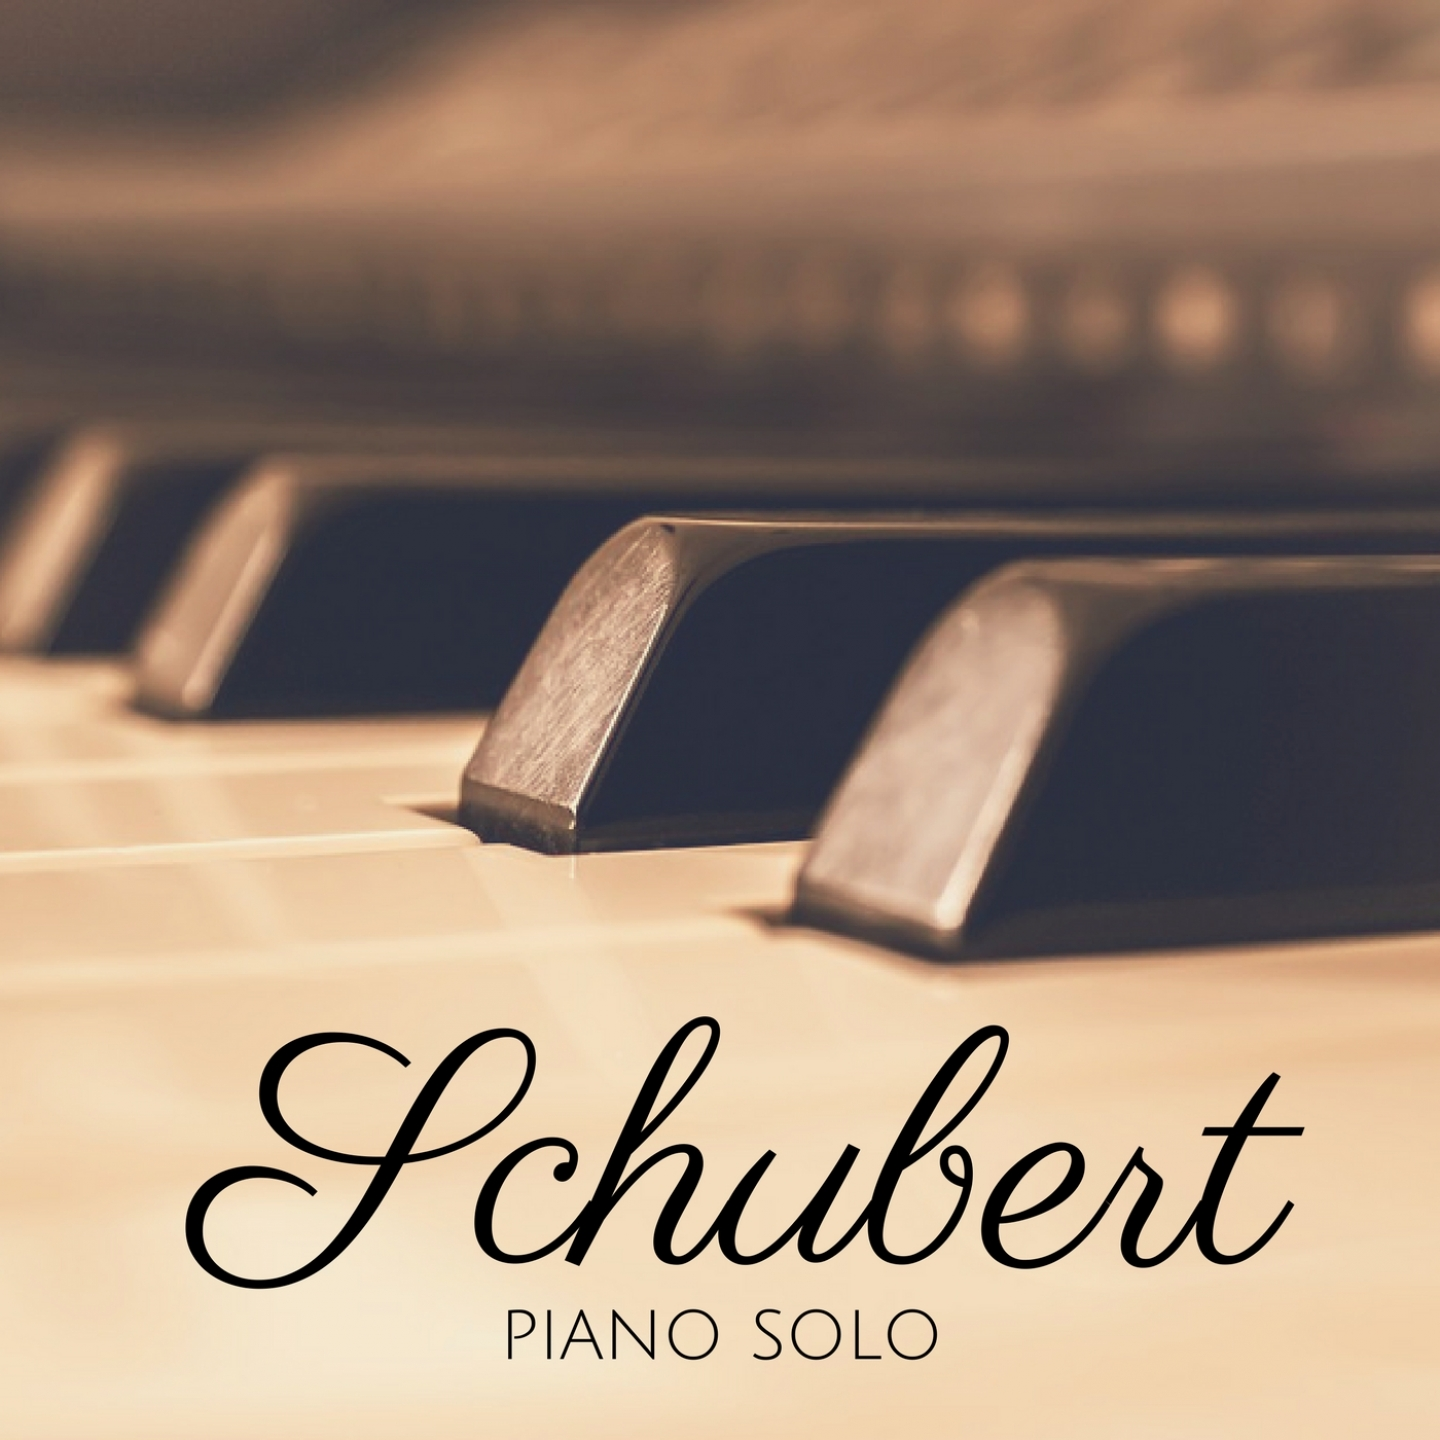 Schubert: Piano Solo